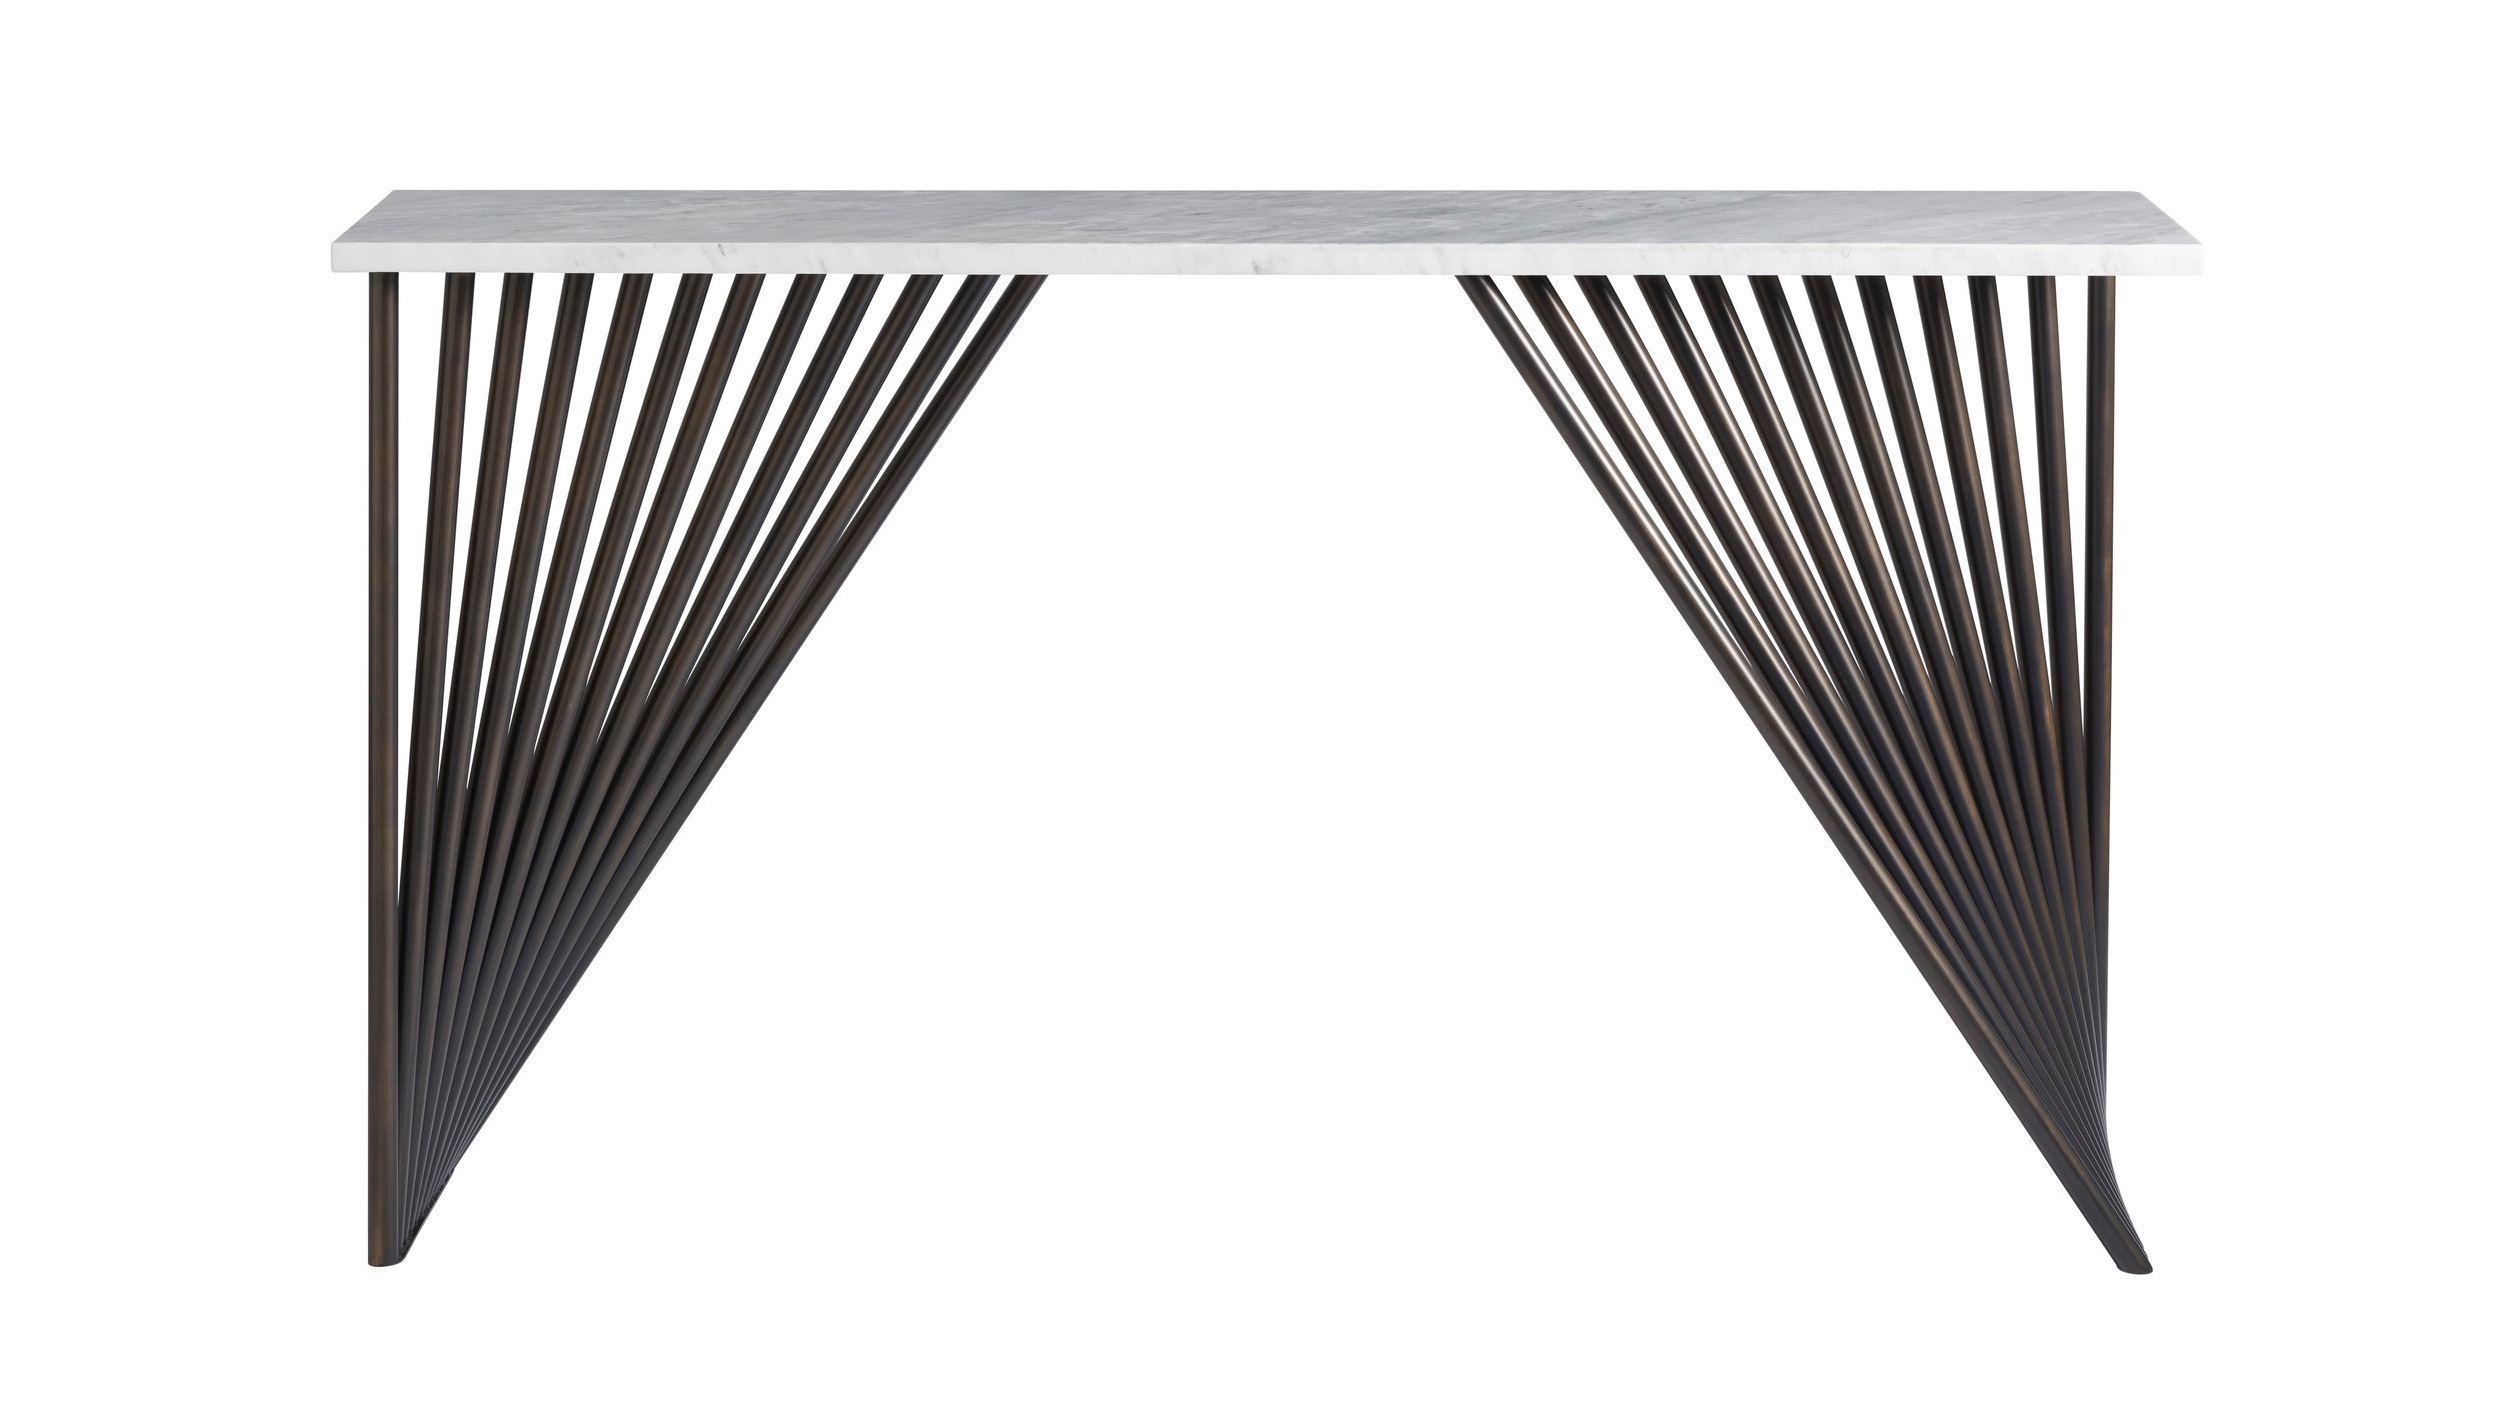 The 5'W Marcel Console features a Carrara marble top and tubular metal base in a bronze finish.